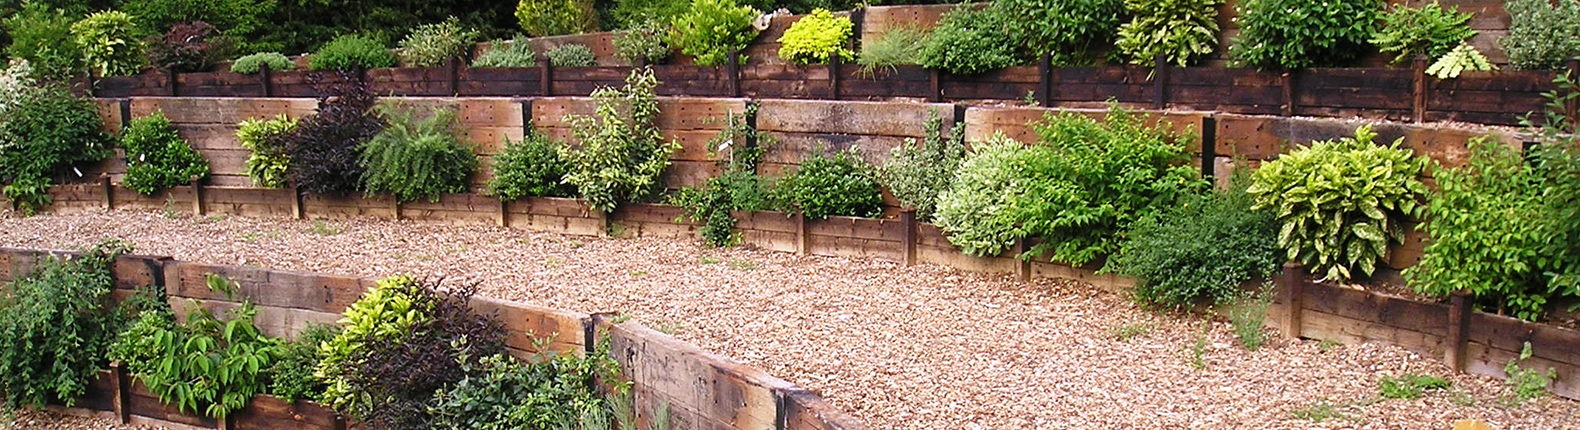 How To Build A Retaining Sleeper Wall Avs Fencing Supplies